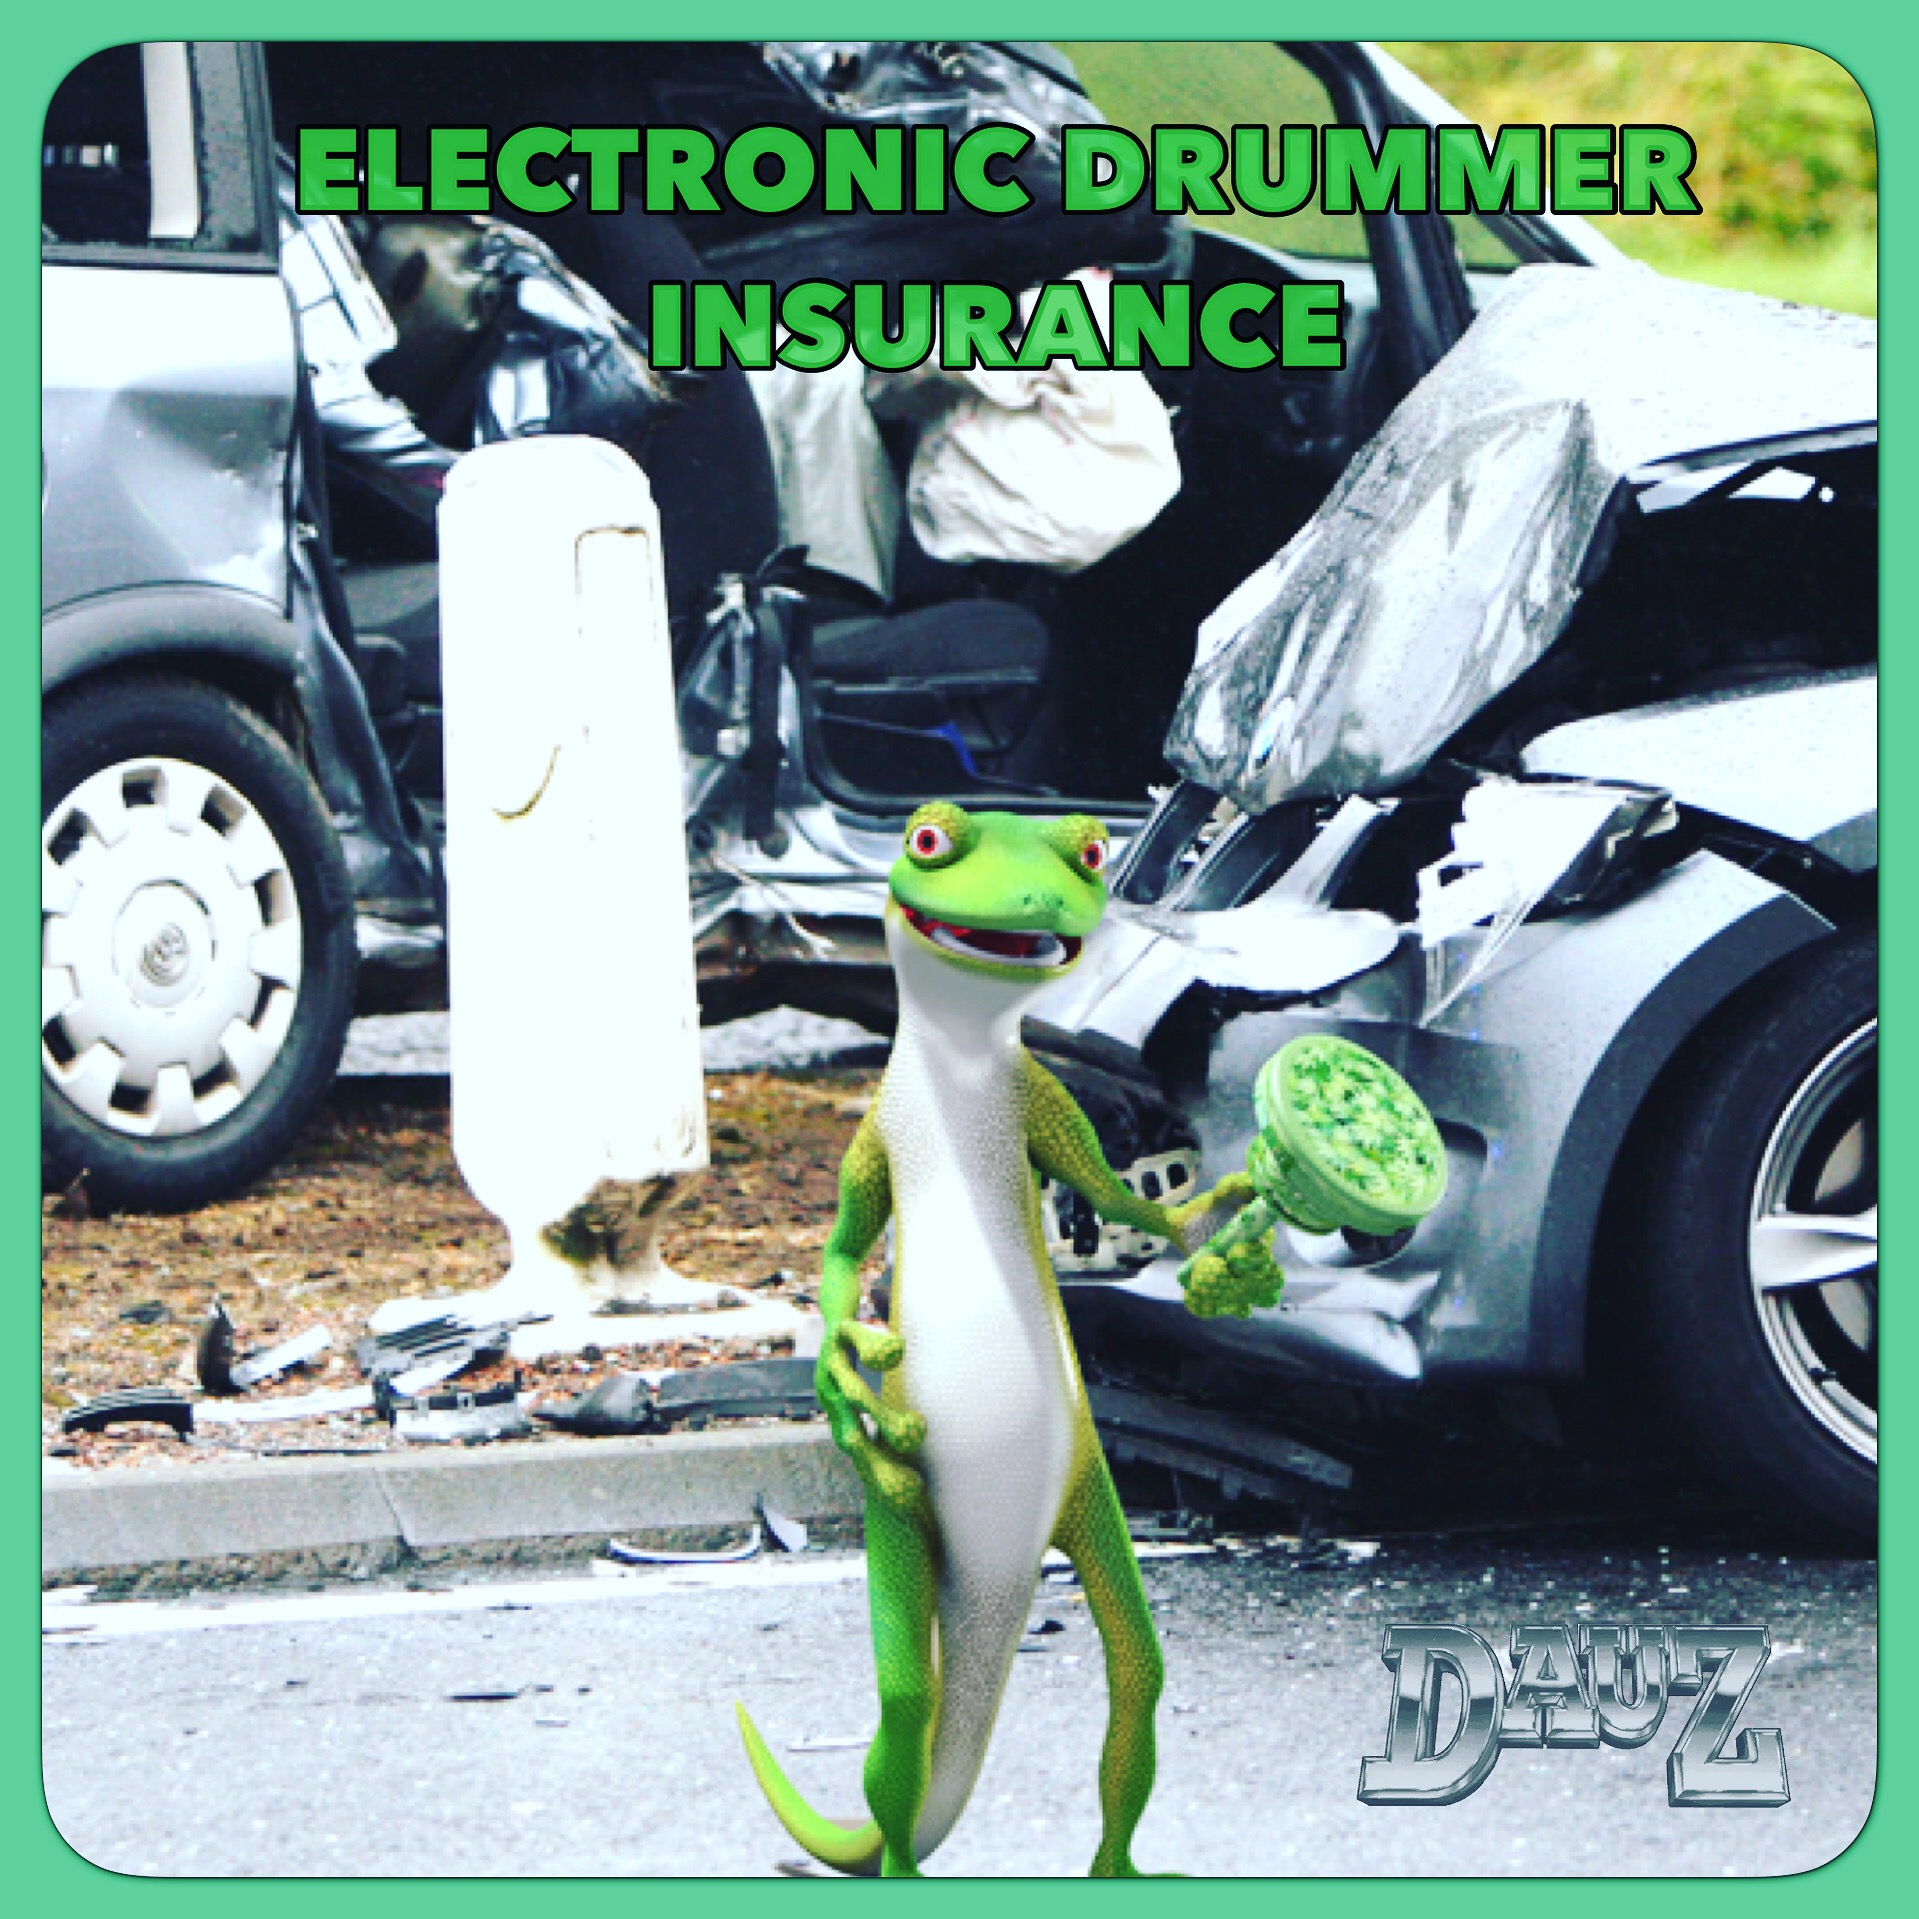 Electronic Drummer Insurance